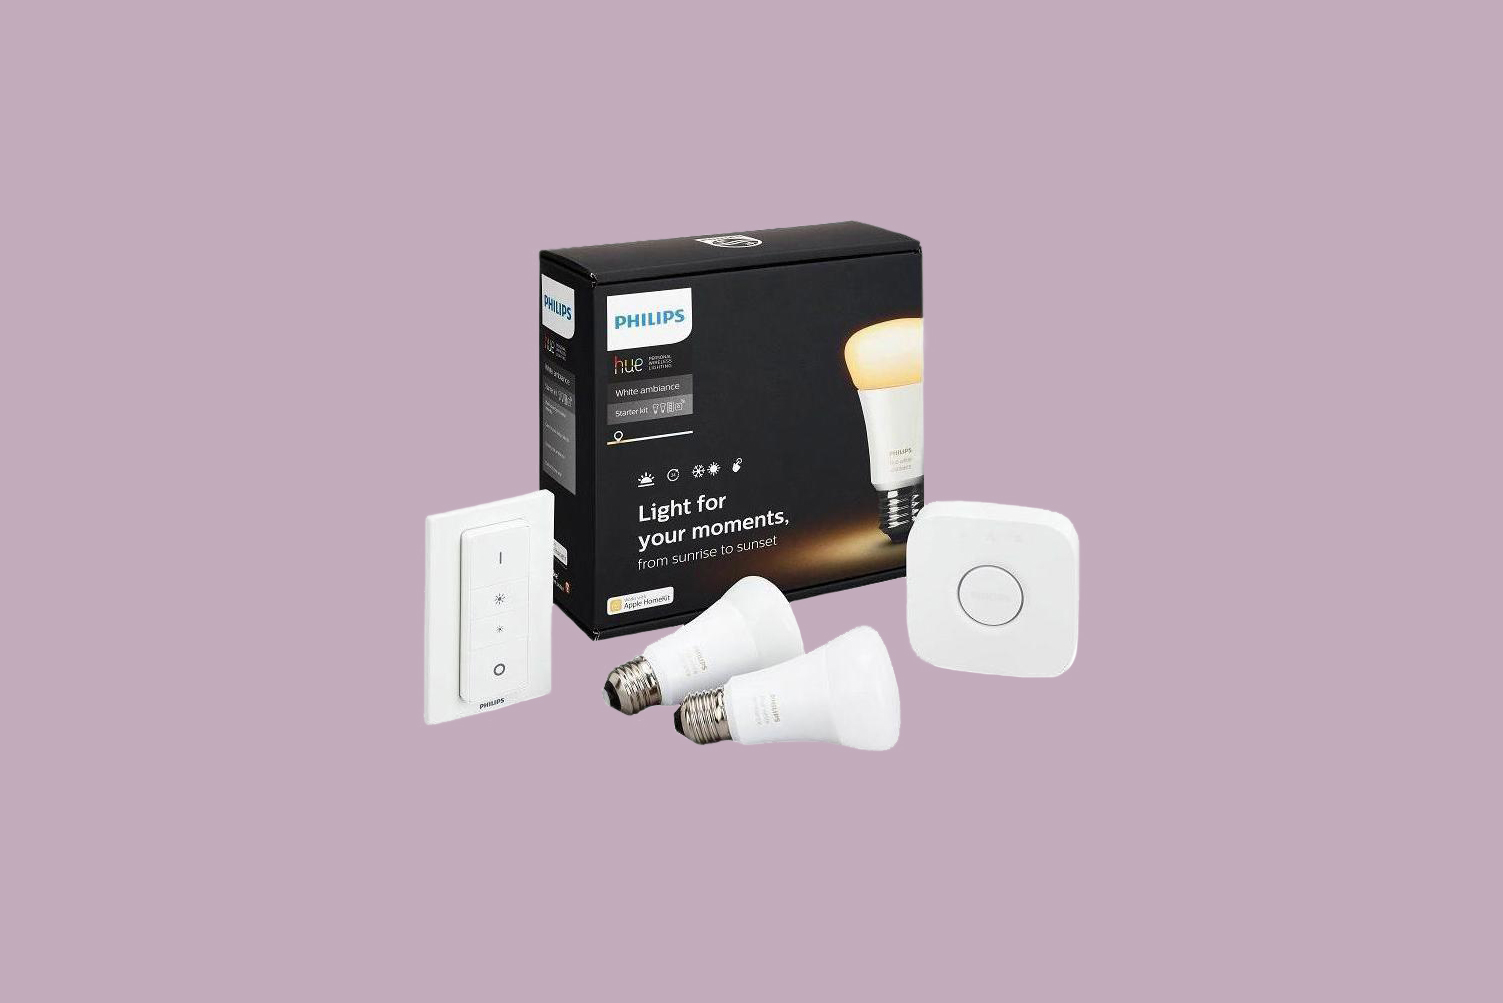 Phillips Hue White Ambiance Smart Lighting Starter Kit